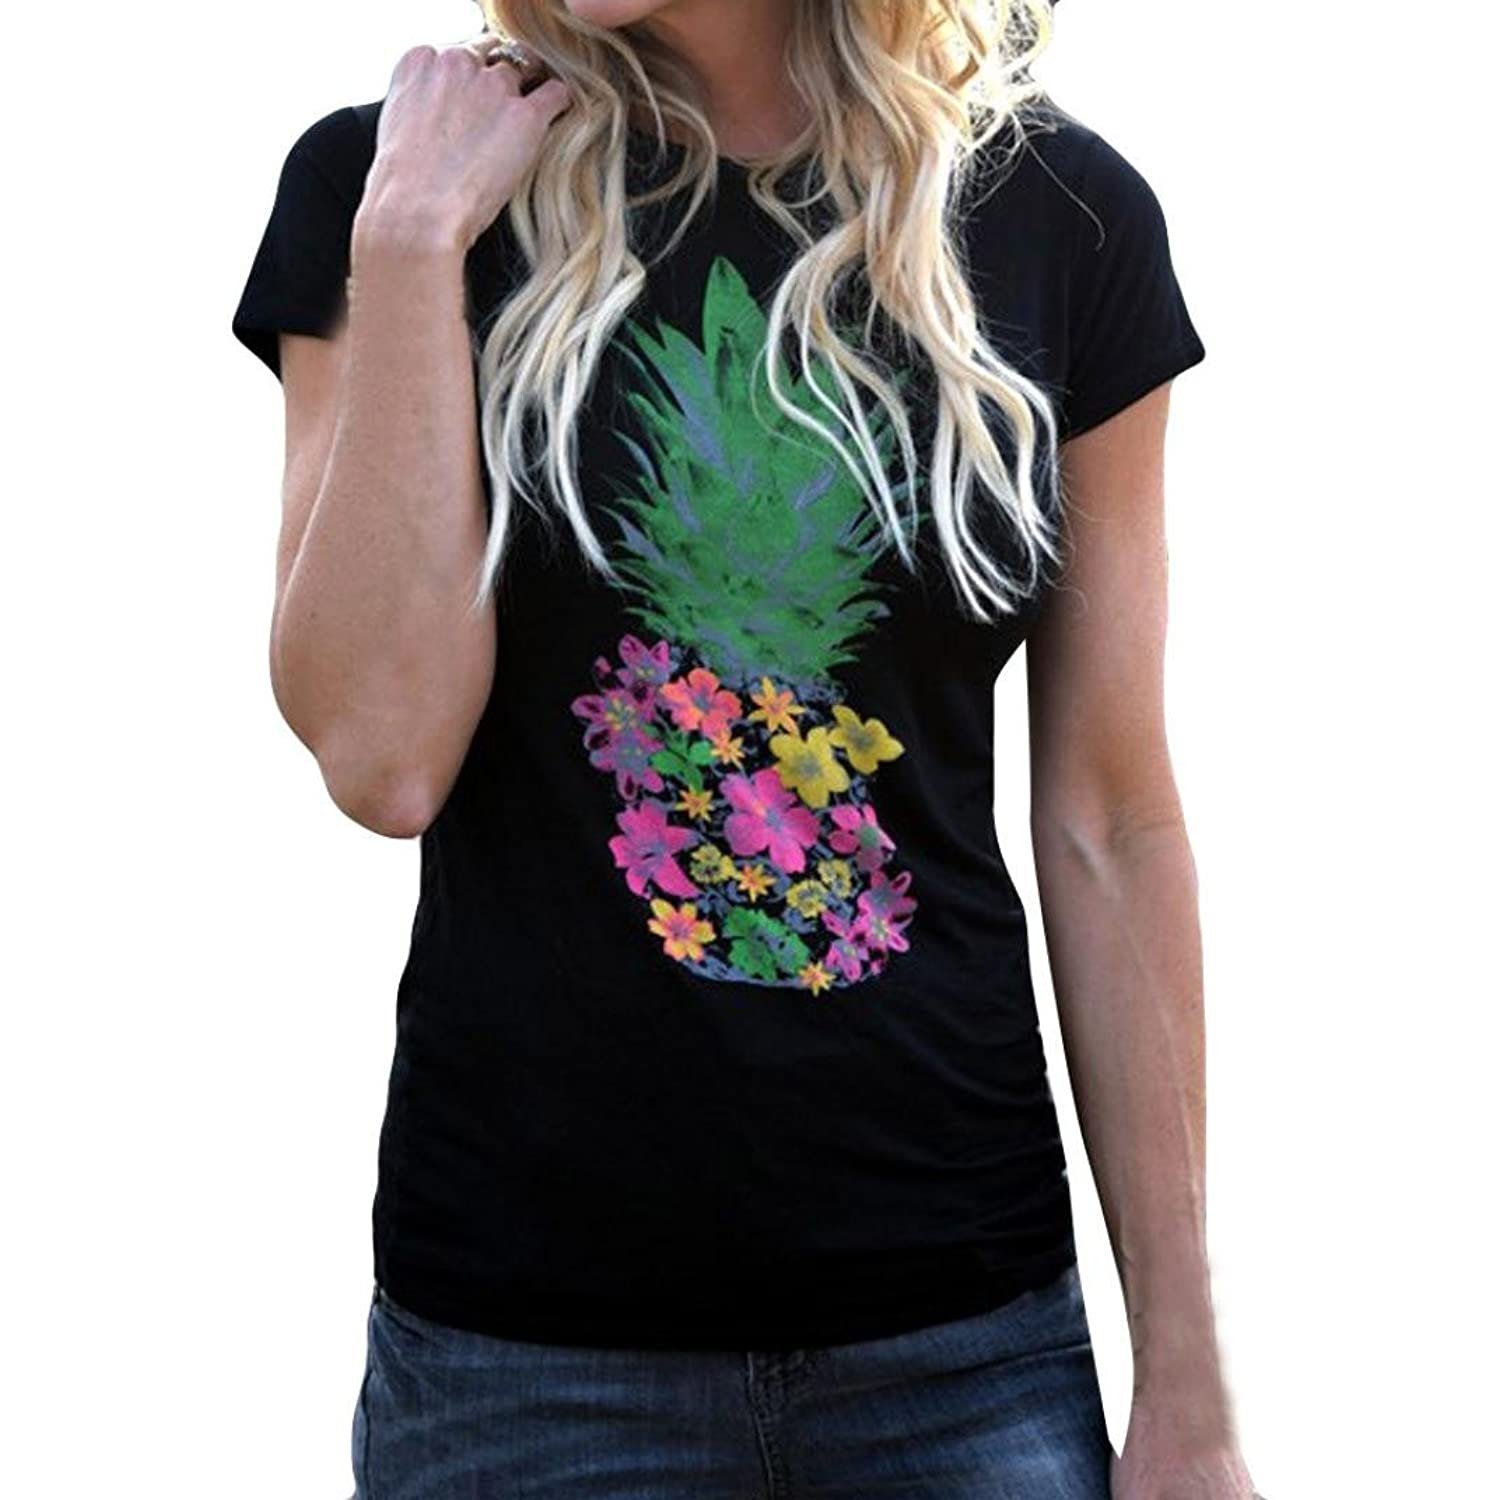 Amazon.com: DondPO Fashion Cute O-Neck Fashion Pineapple Cactus Printing Top Short Sleeve Summer T-Shirts Casual Loose Blouse Girl Tops Tee: Clothing